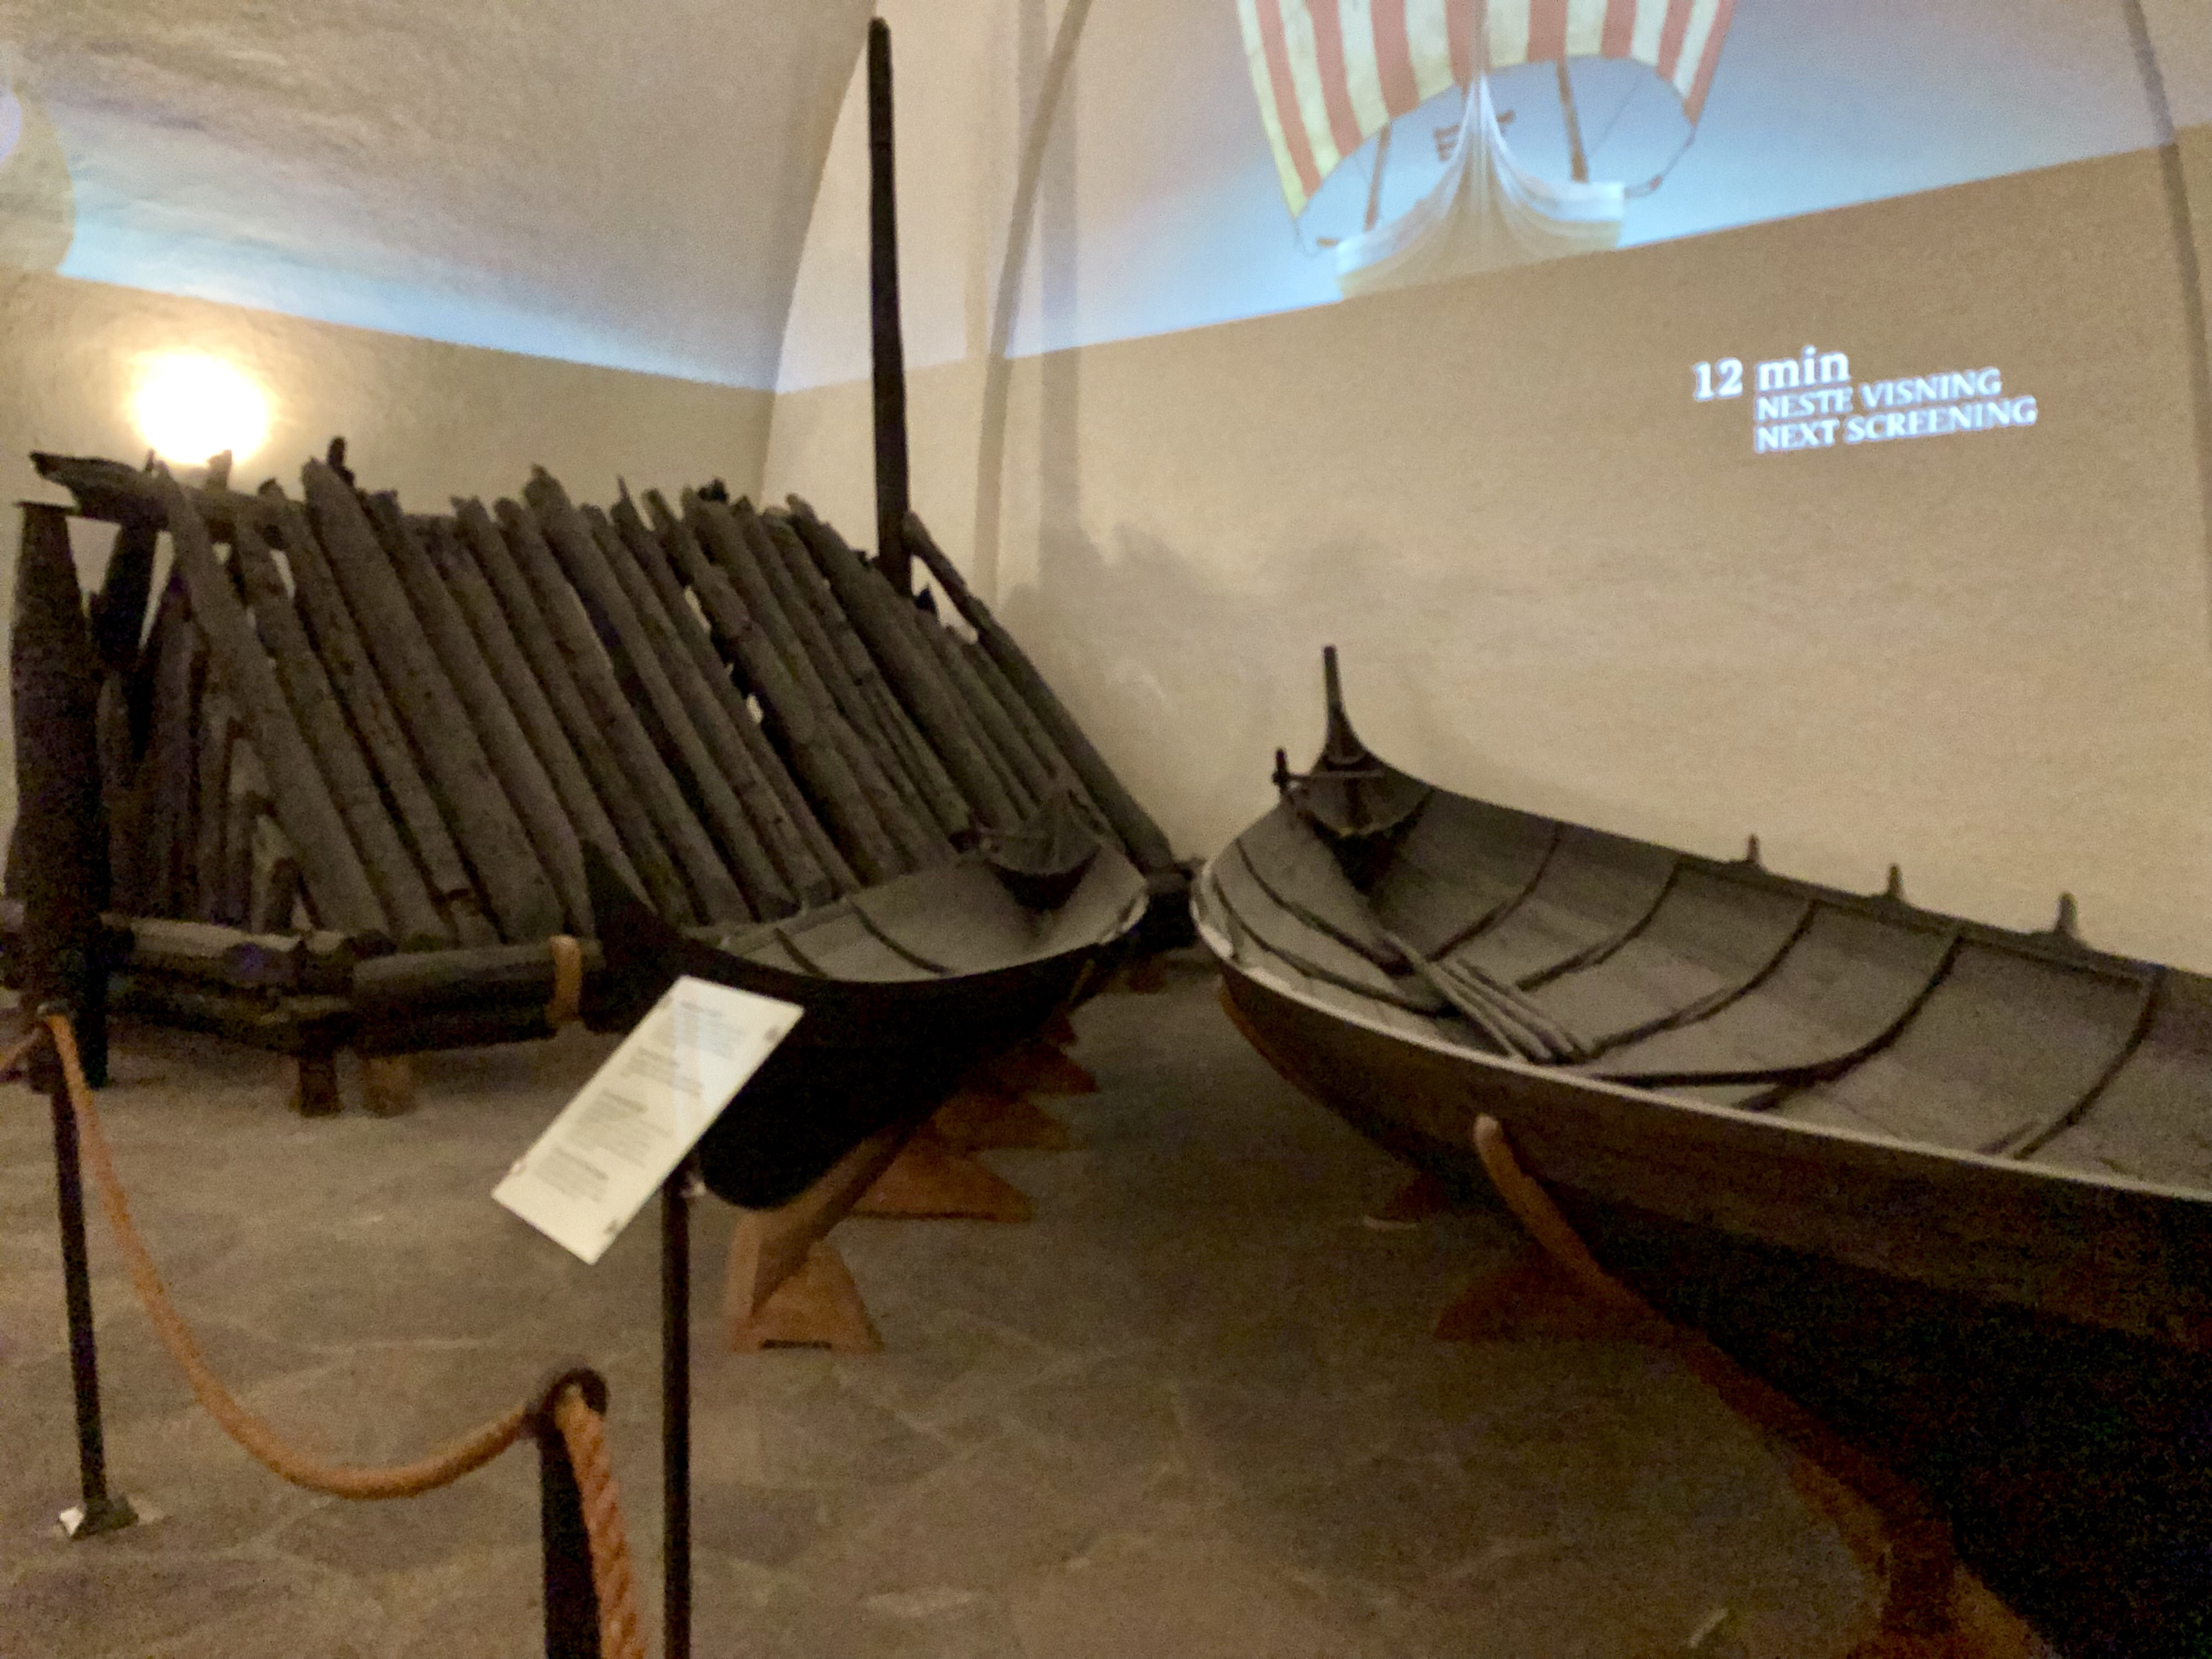 Photo of the Gokstad ship burial chamber and small boat